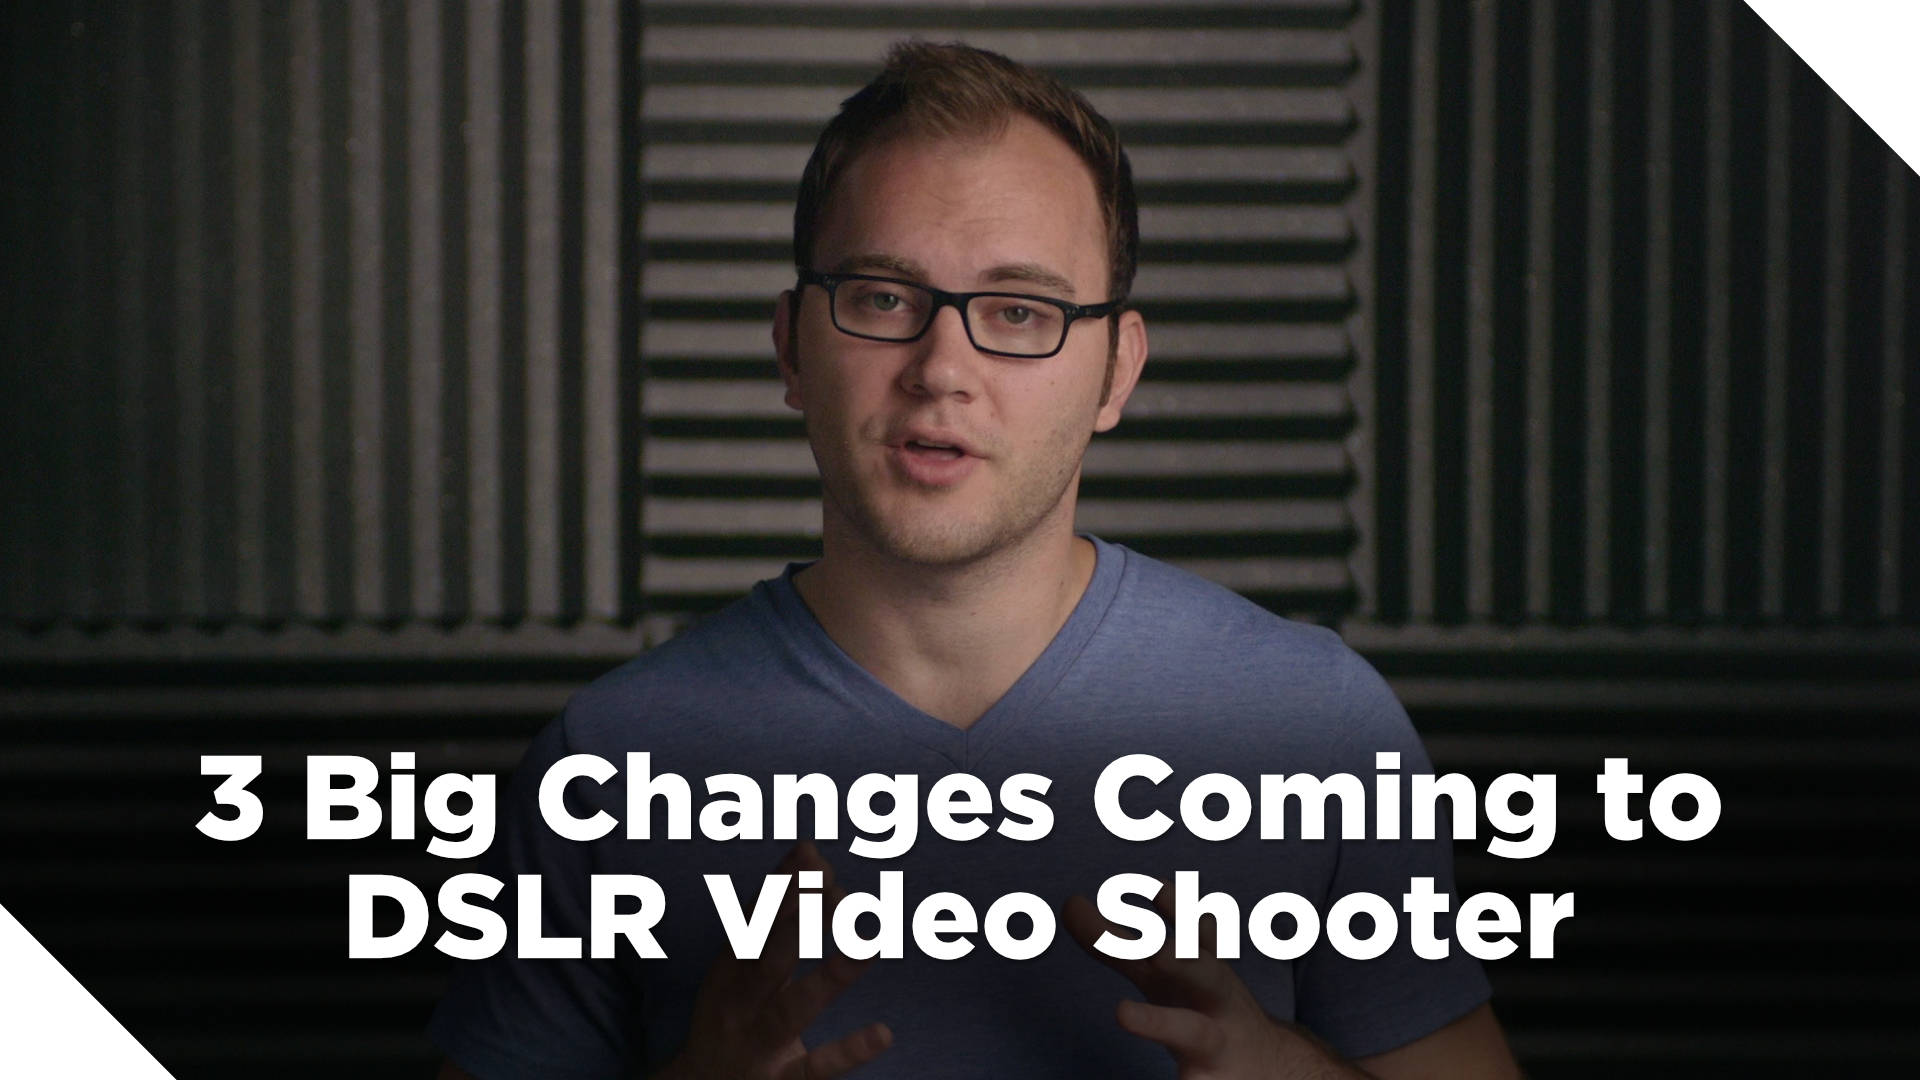 3 Big Changes Coming to DSLR Video Shooter